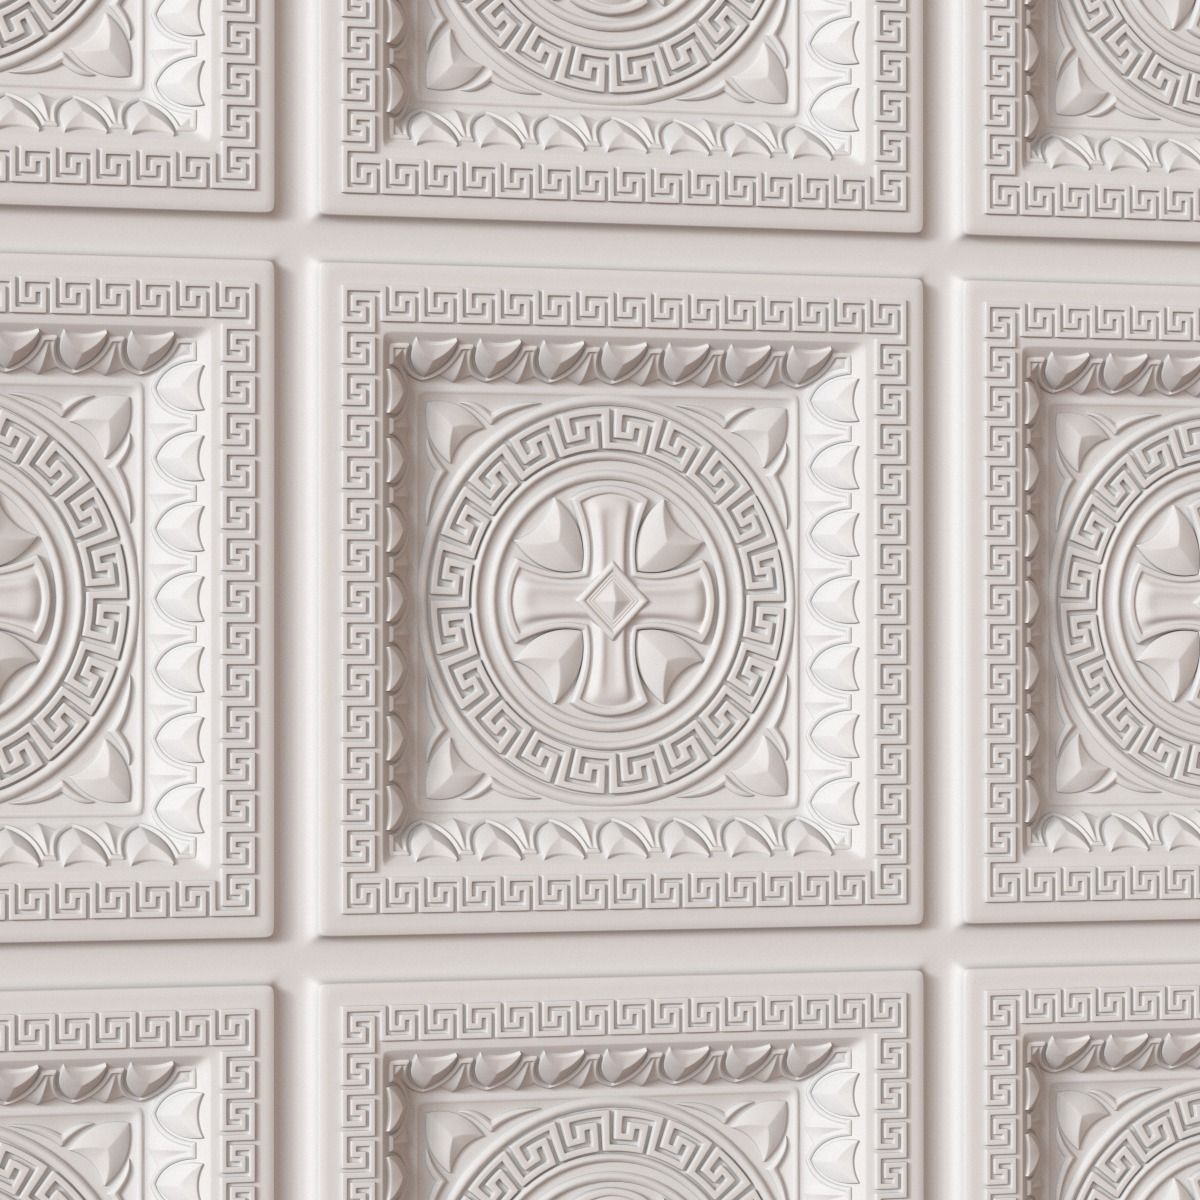 Decorative Ceiling Tile 010 3d Model Max Obj Fbx Ma